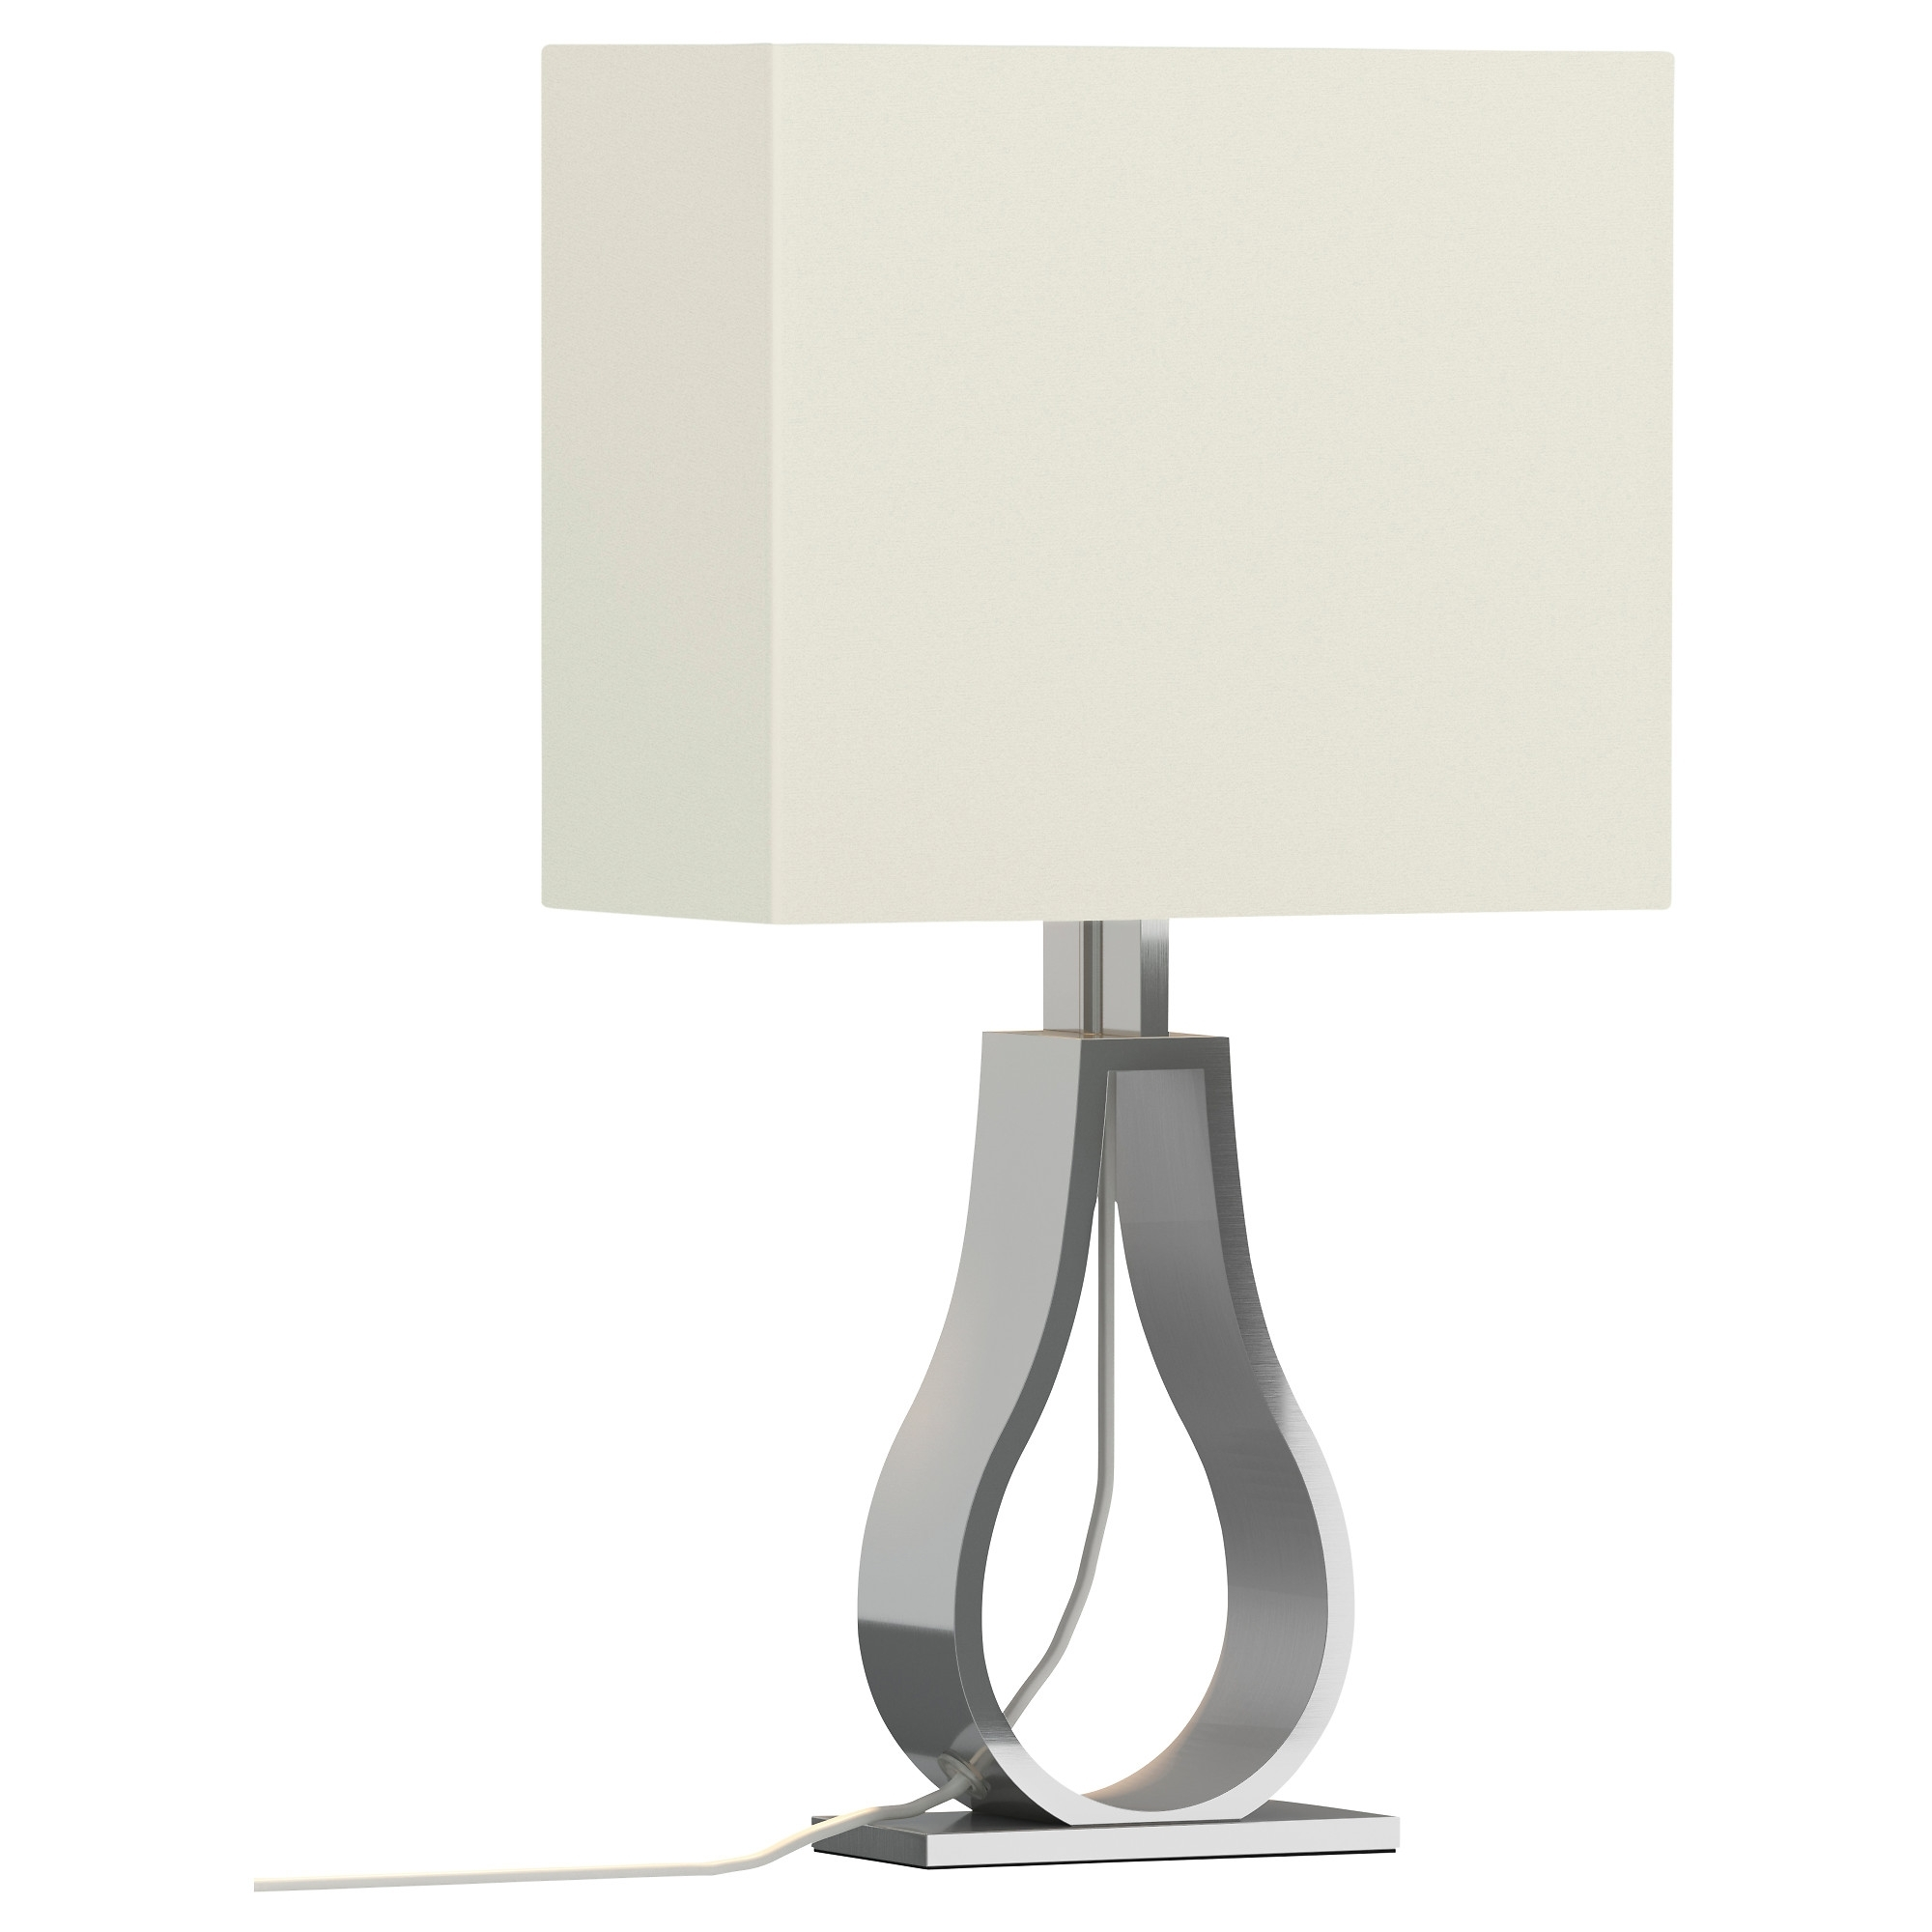 Trendy Table Lamps Ikea Decoration (View 18 of 20)